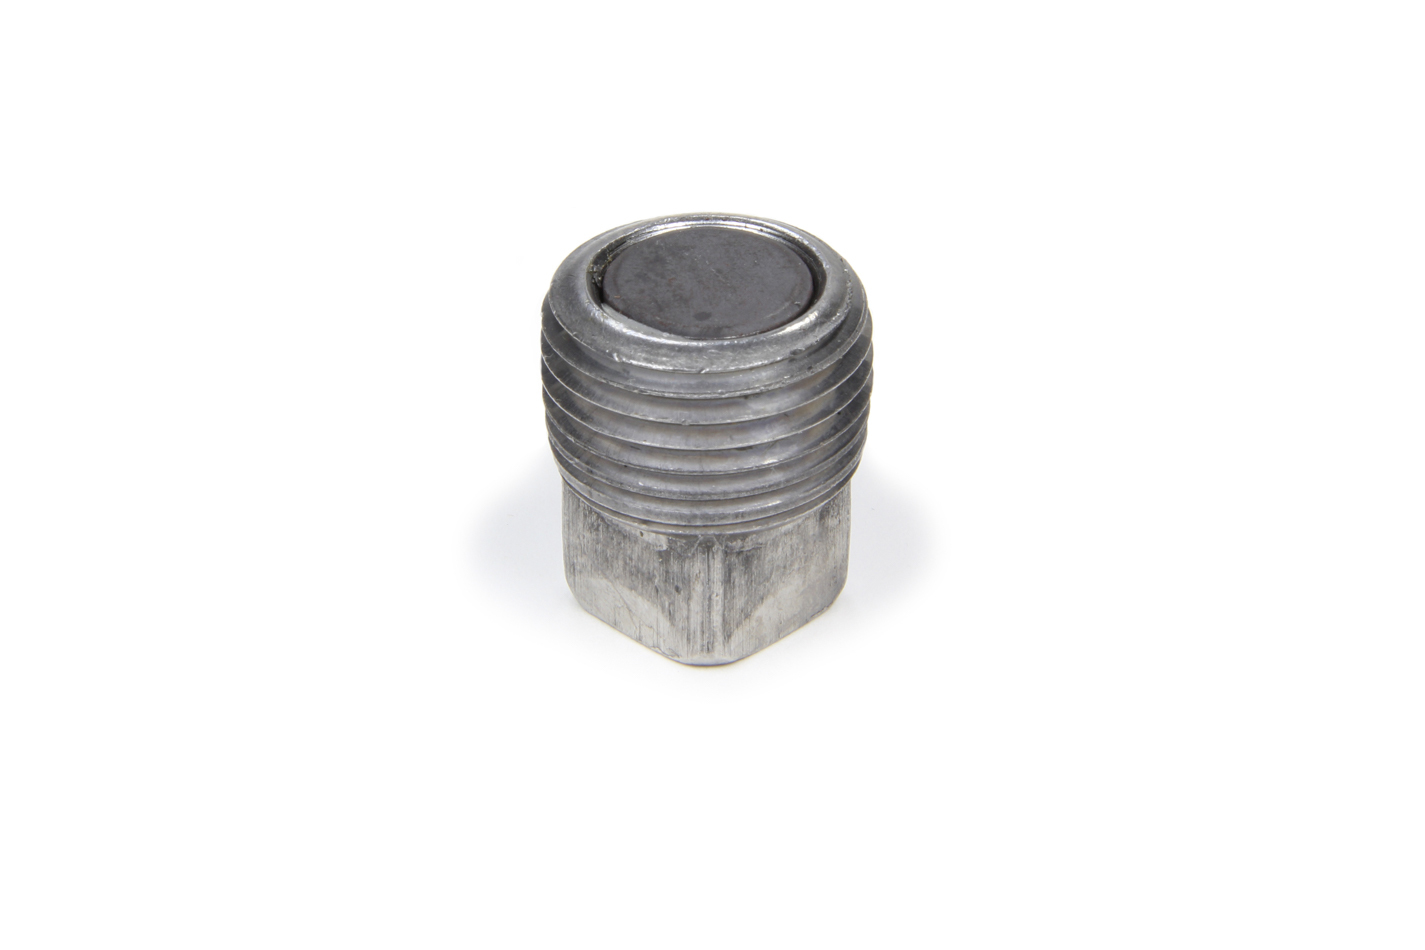 Trans Dapt 9064 Drain Plug, 1/2 in NPT, Square Head, Magnetic, Steel, Natural, Each